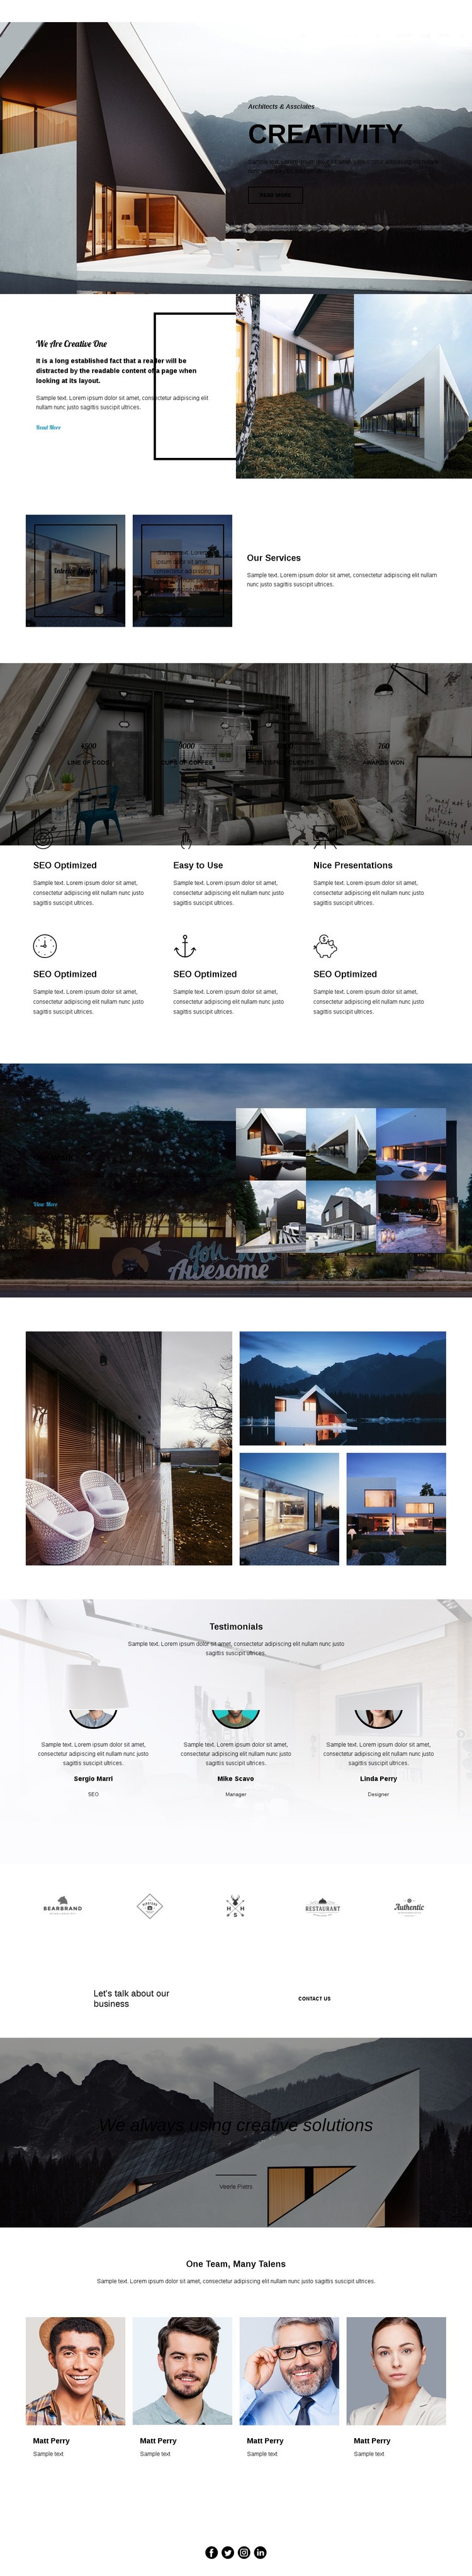 Creativity in architecture Html Code Example